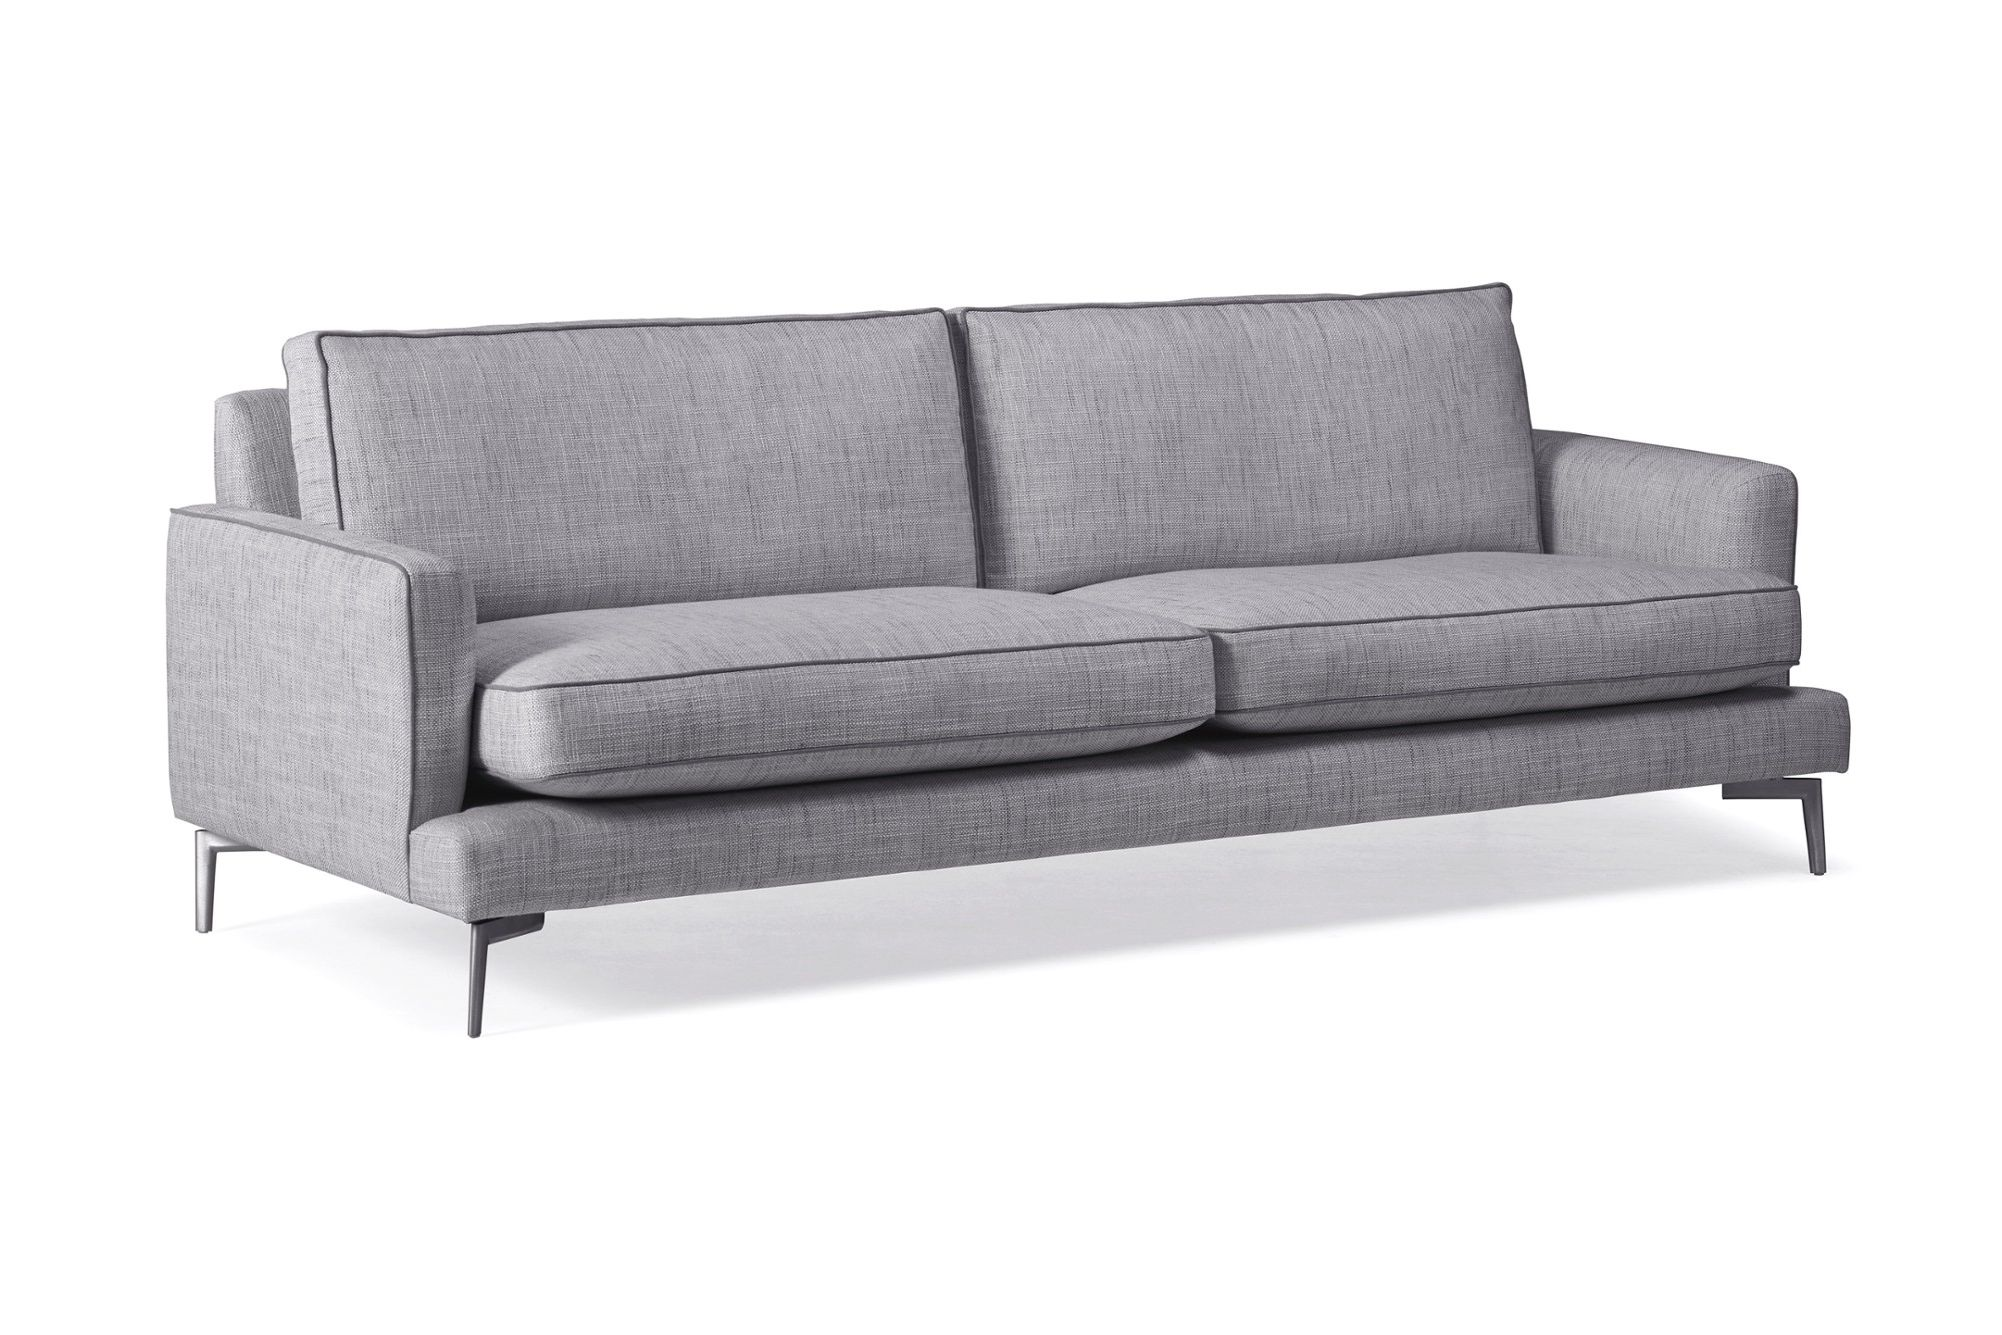 Sofas Furniture Odense Buy Sofas And More From